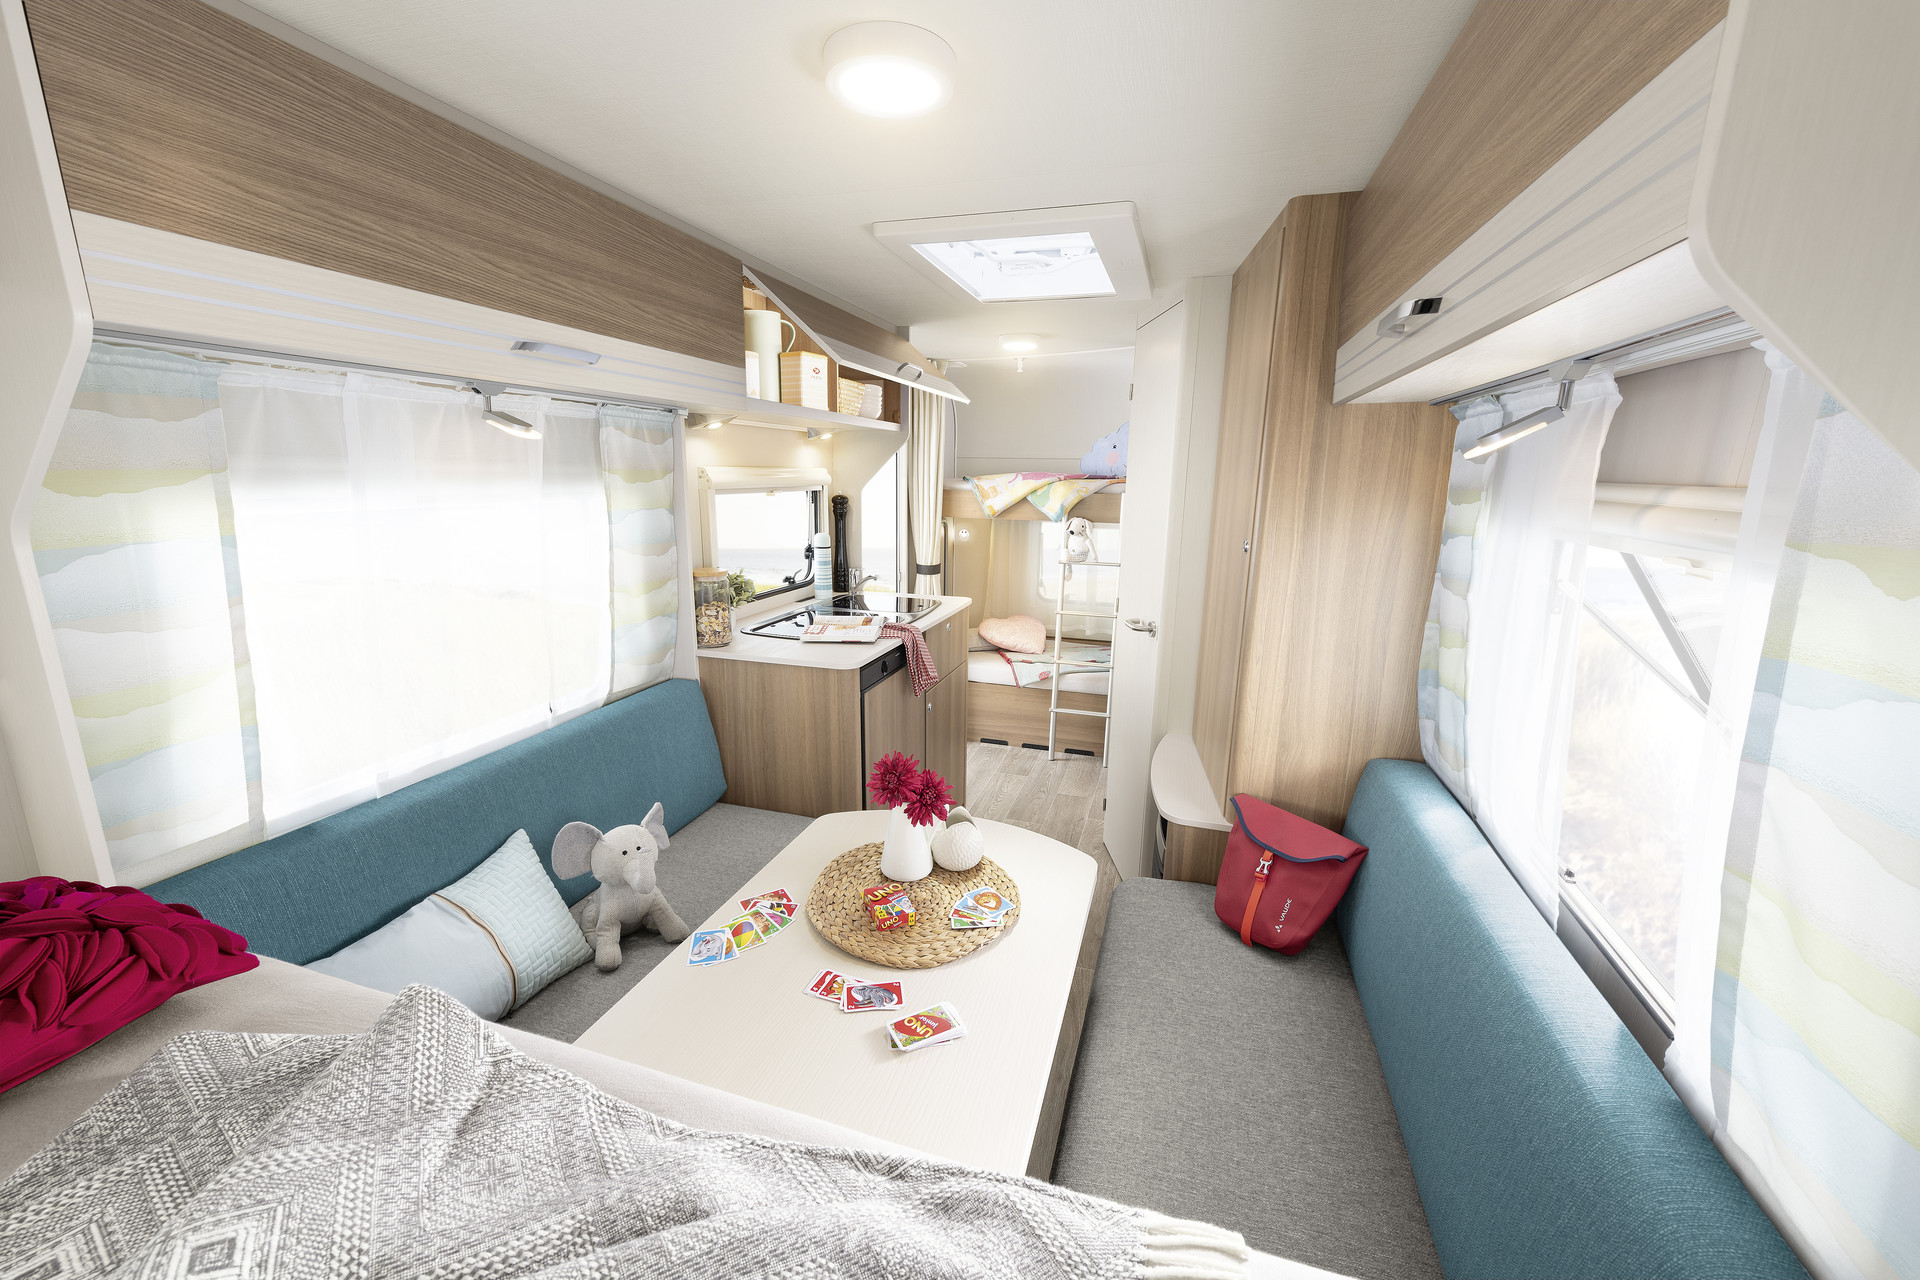 A holiday without compromises. The c'joy has plenty of room for all your holiday clothes – and everything else you need for your trip. The numerous storage compartments and the wardrobe ensure everything has its place – and with up to 7 berths it is the perfect, compact, entry-level family caravan • 480 QLK | Clipper 9